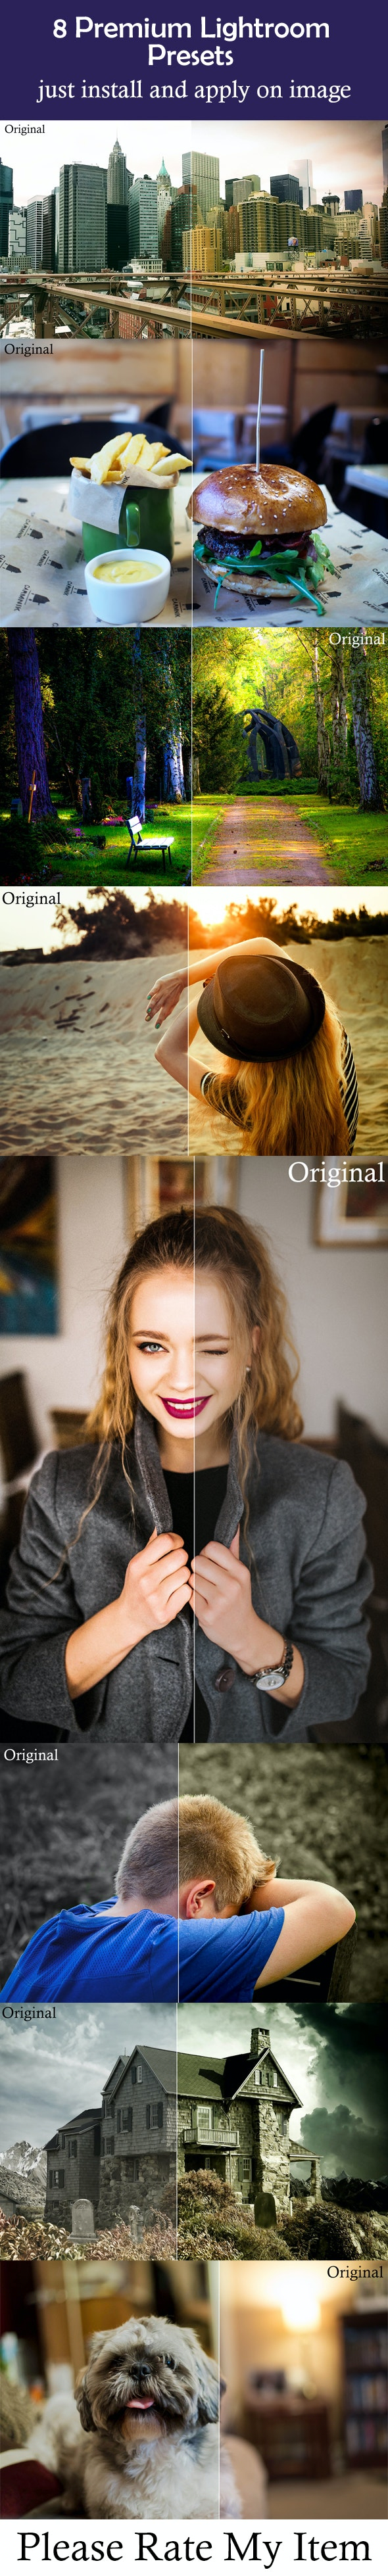 8 Premium Lightroom Presets - Lightroom Presets Add-ons